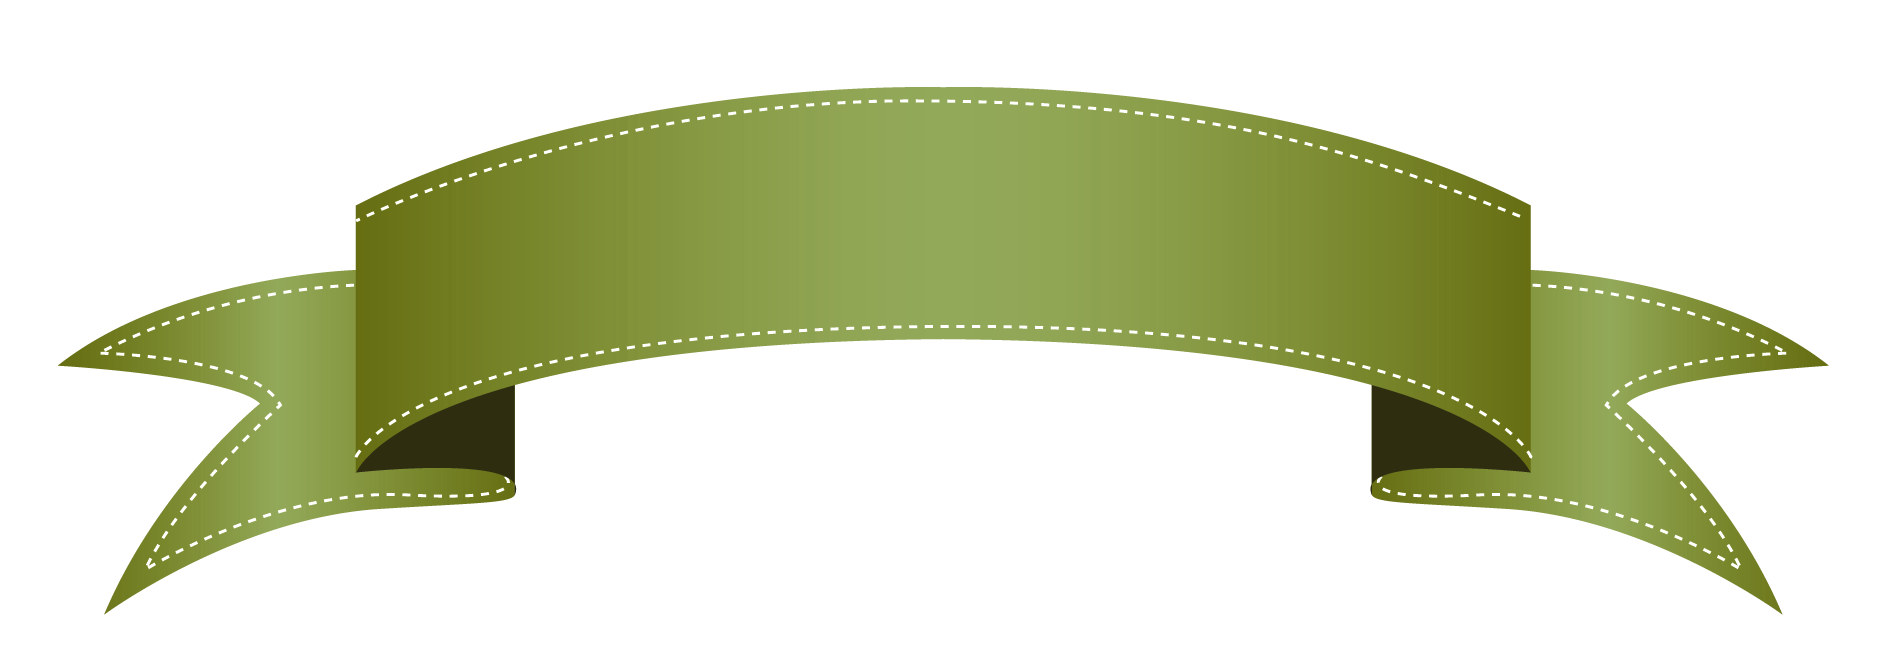 Flag clipart ribbon. Green banner